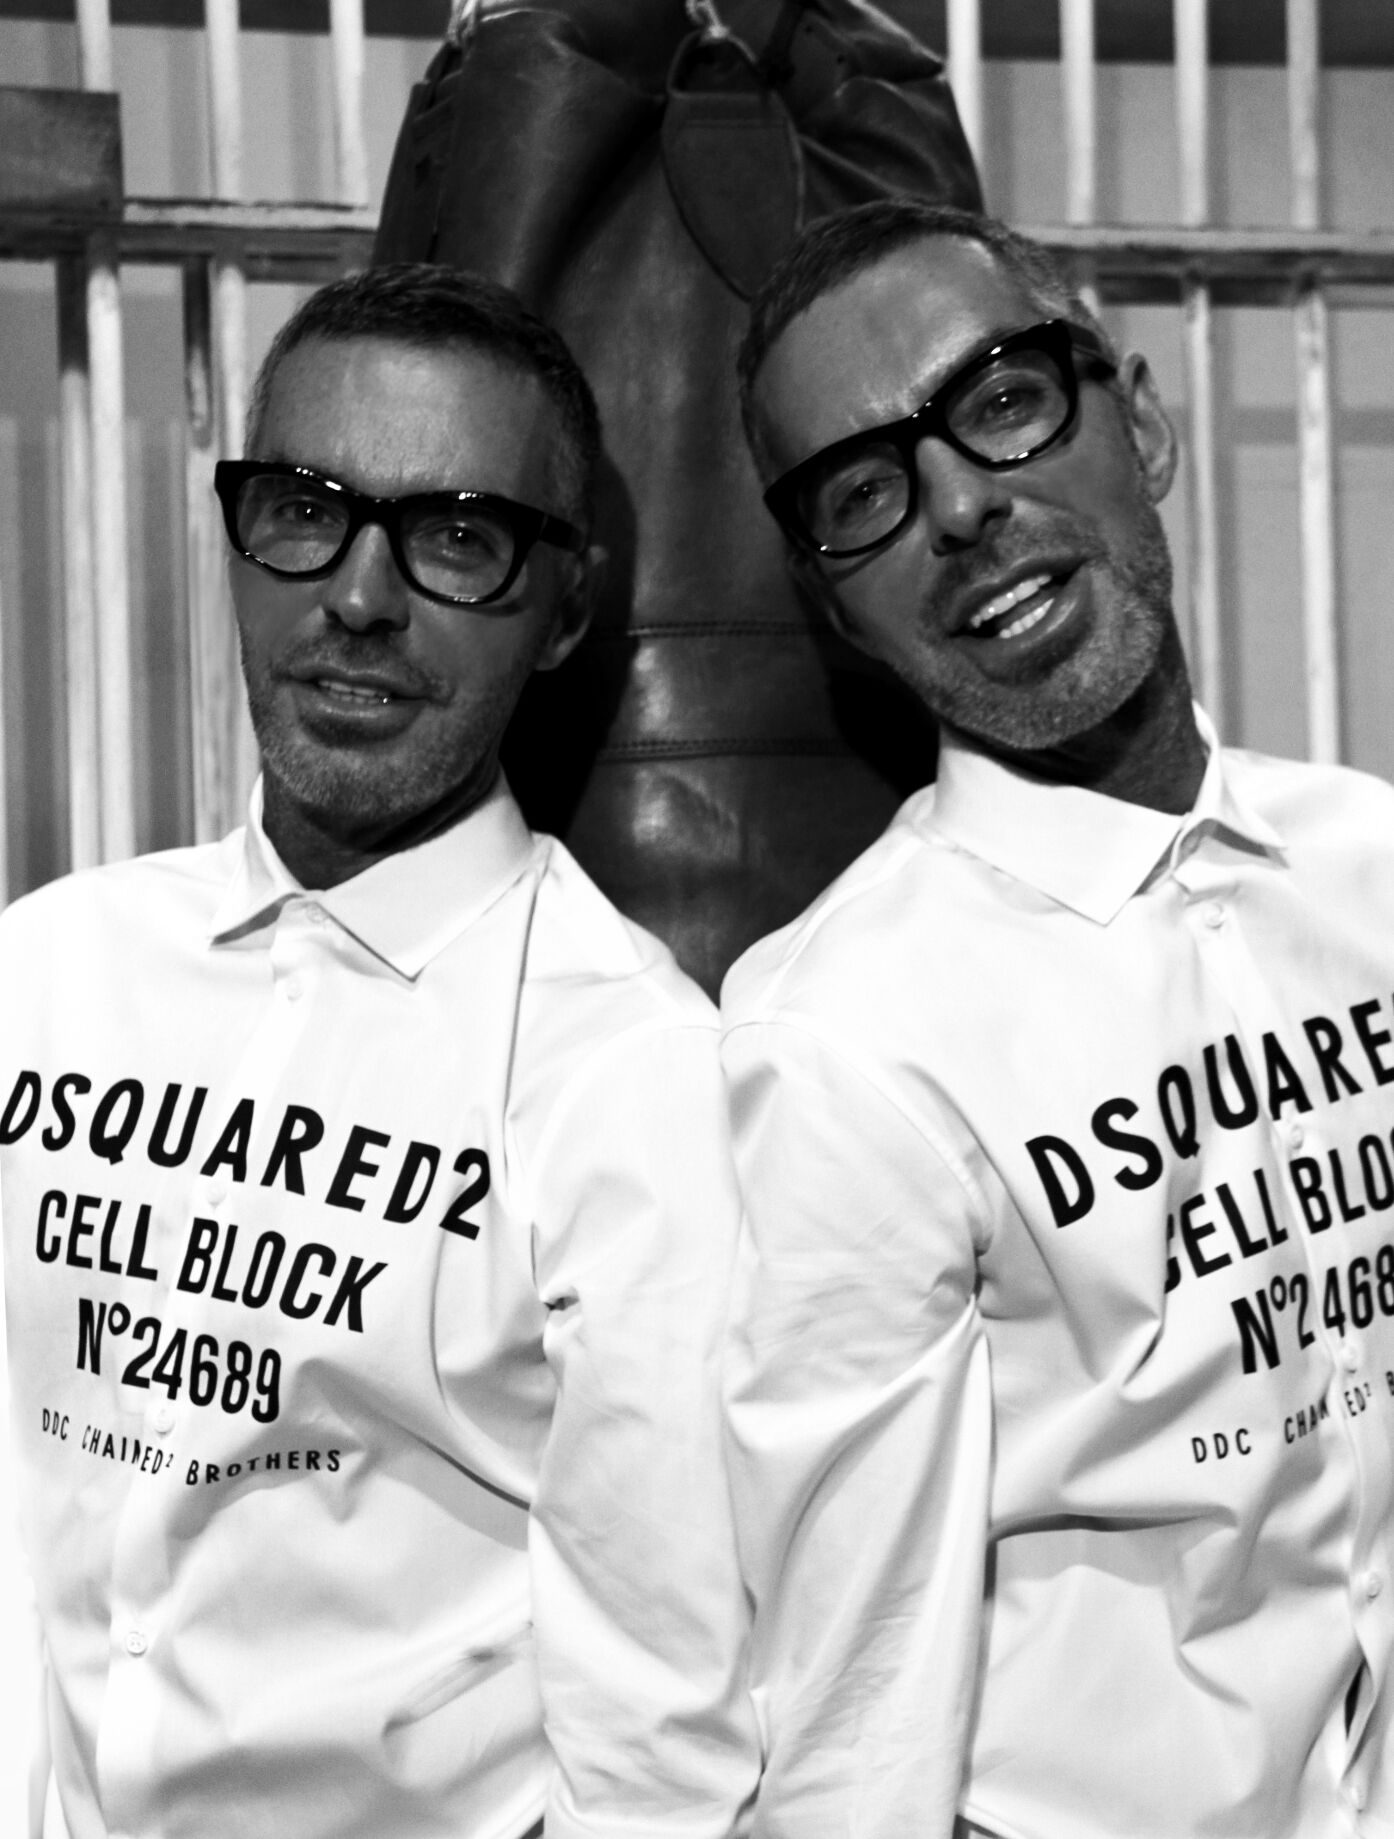 Backstage Dsquared2 Dean and Dan